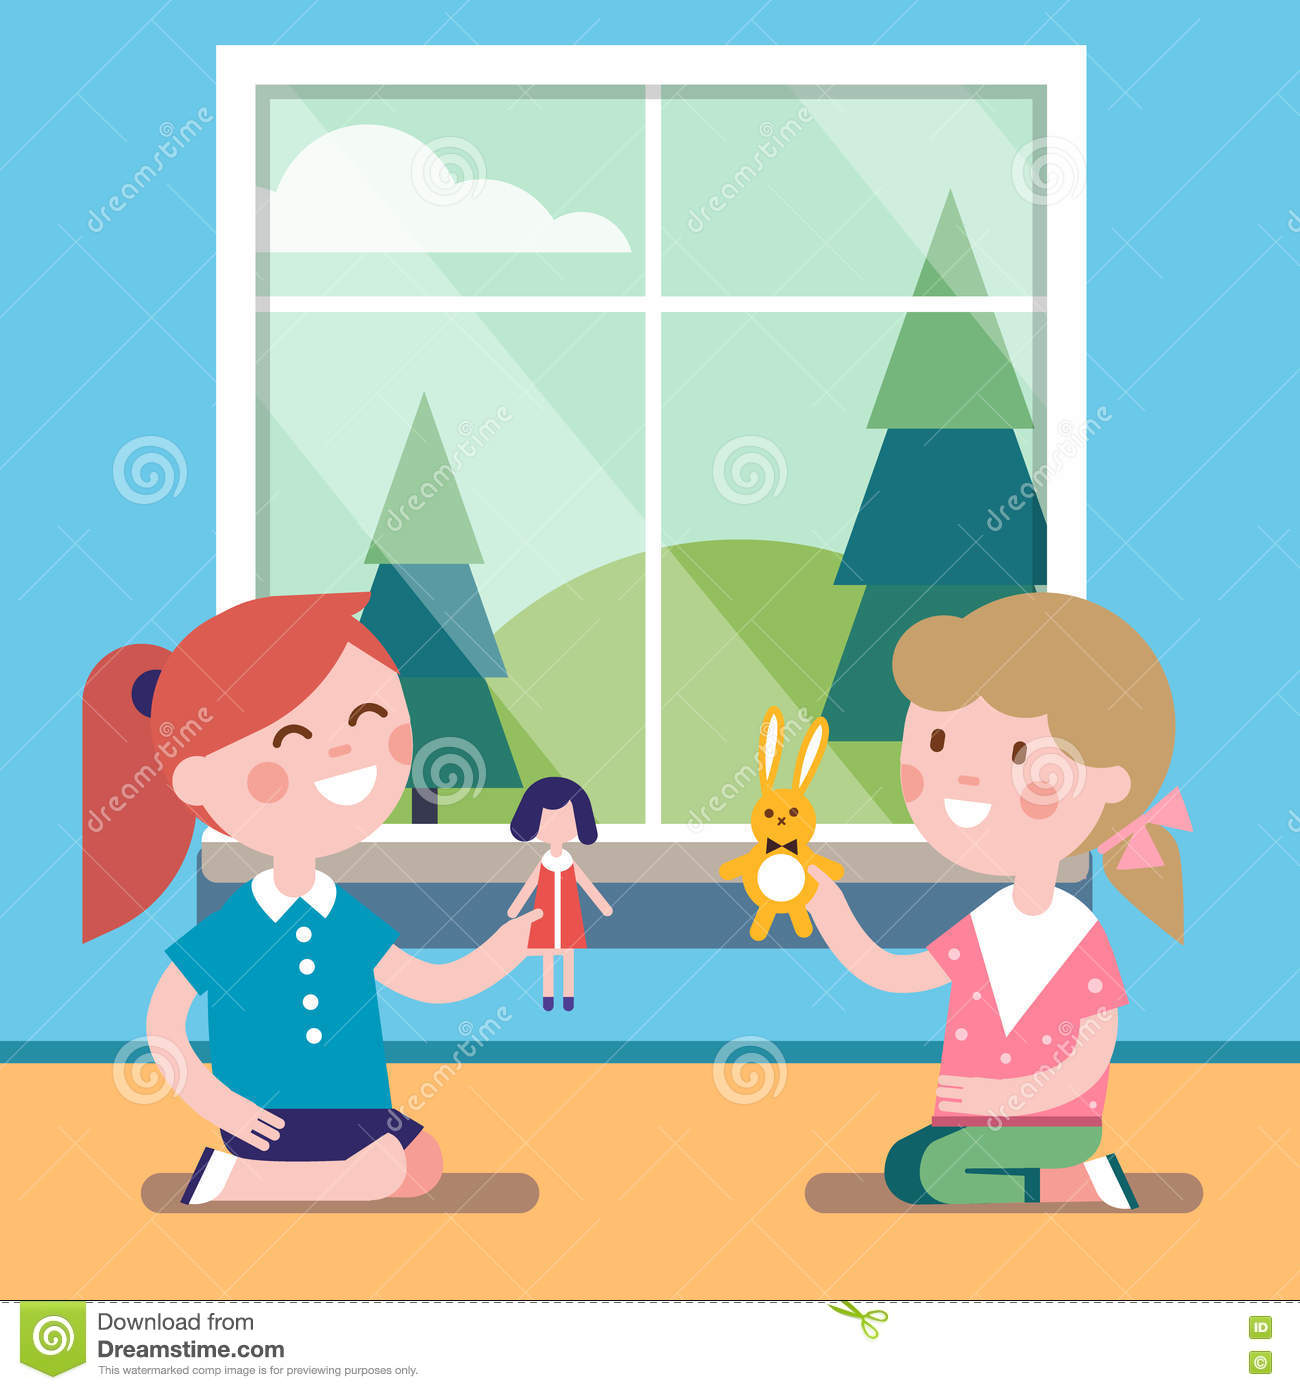 Two Friends Playing With Toy Dolls Together Stock Vector ...